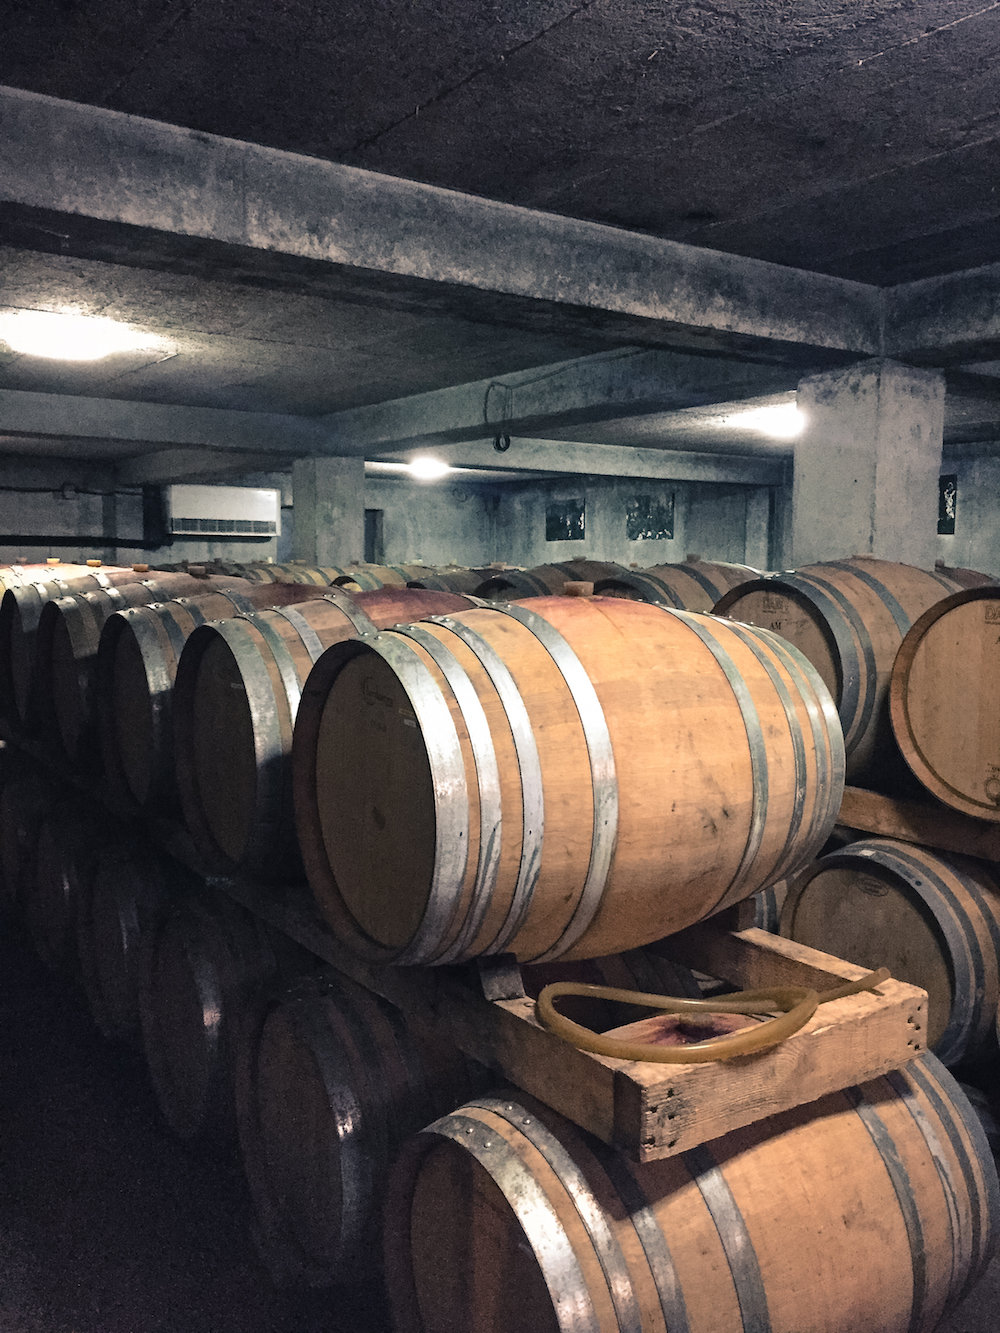 Barrels in the wine cellar (Eat Me. Drink Me.)